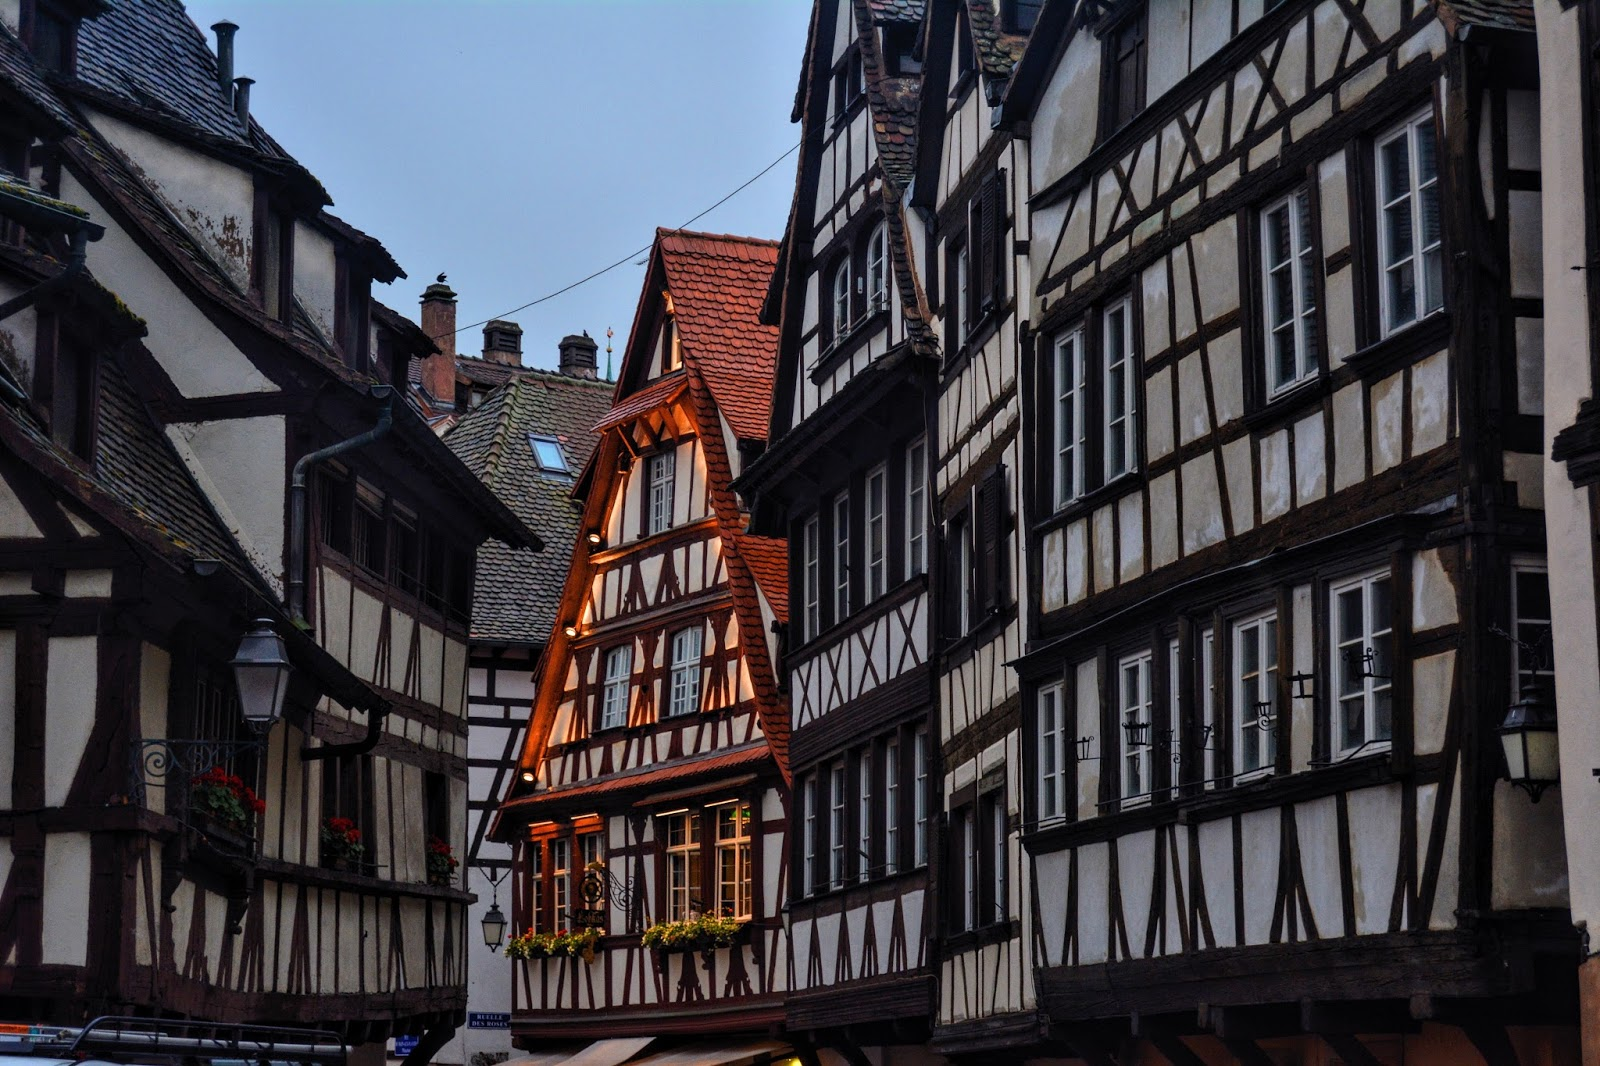 Travel, Books, Food - Planning A EuroTrip From India - Strasbourg, France